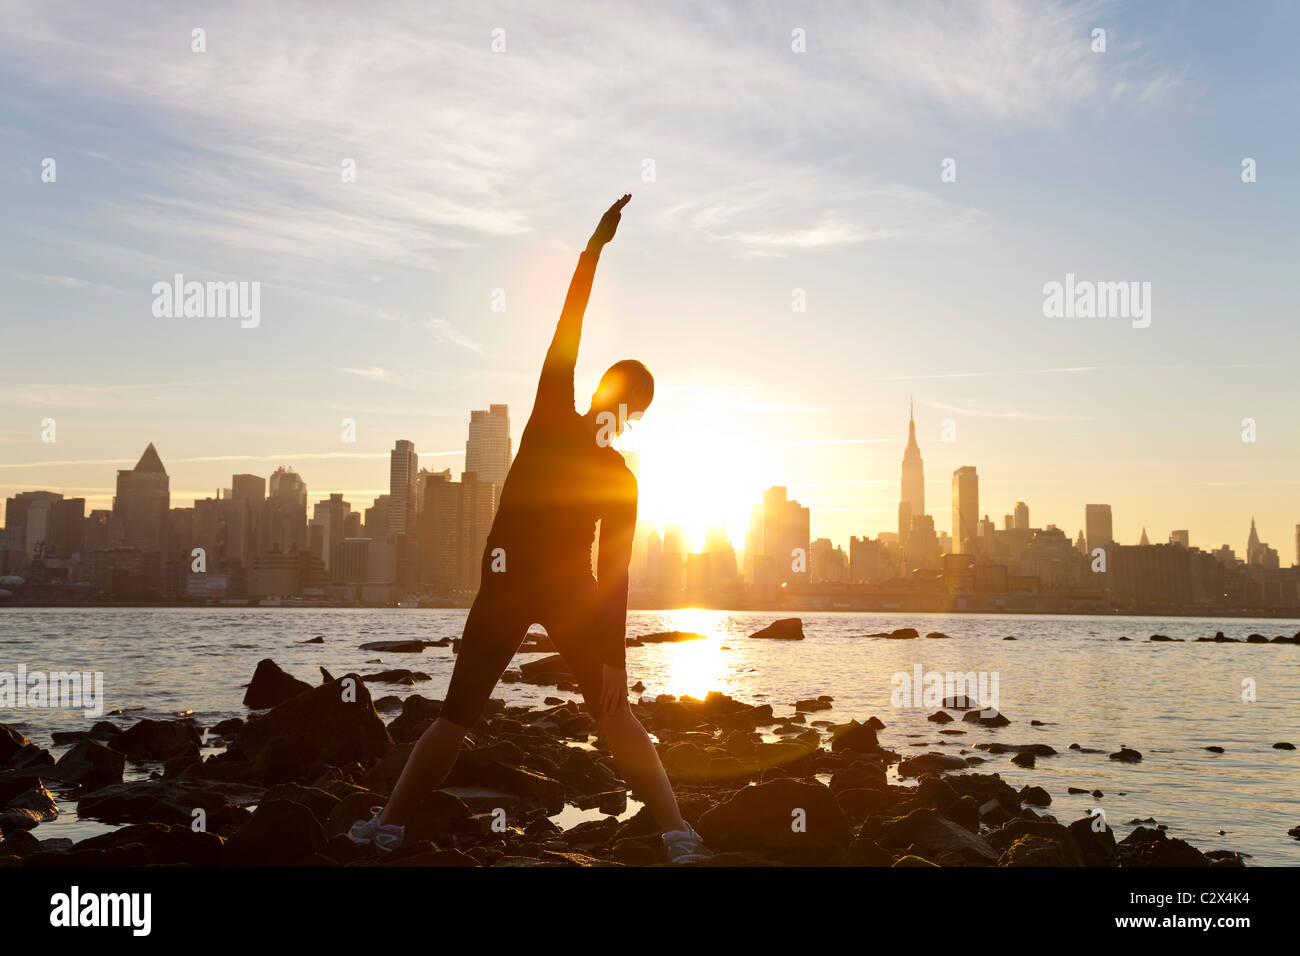 A woman runner stretching in a yoga position in front of the Manhattan skyline, New York City, USA, at dawn sunrise. Stock Foto